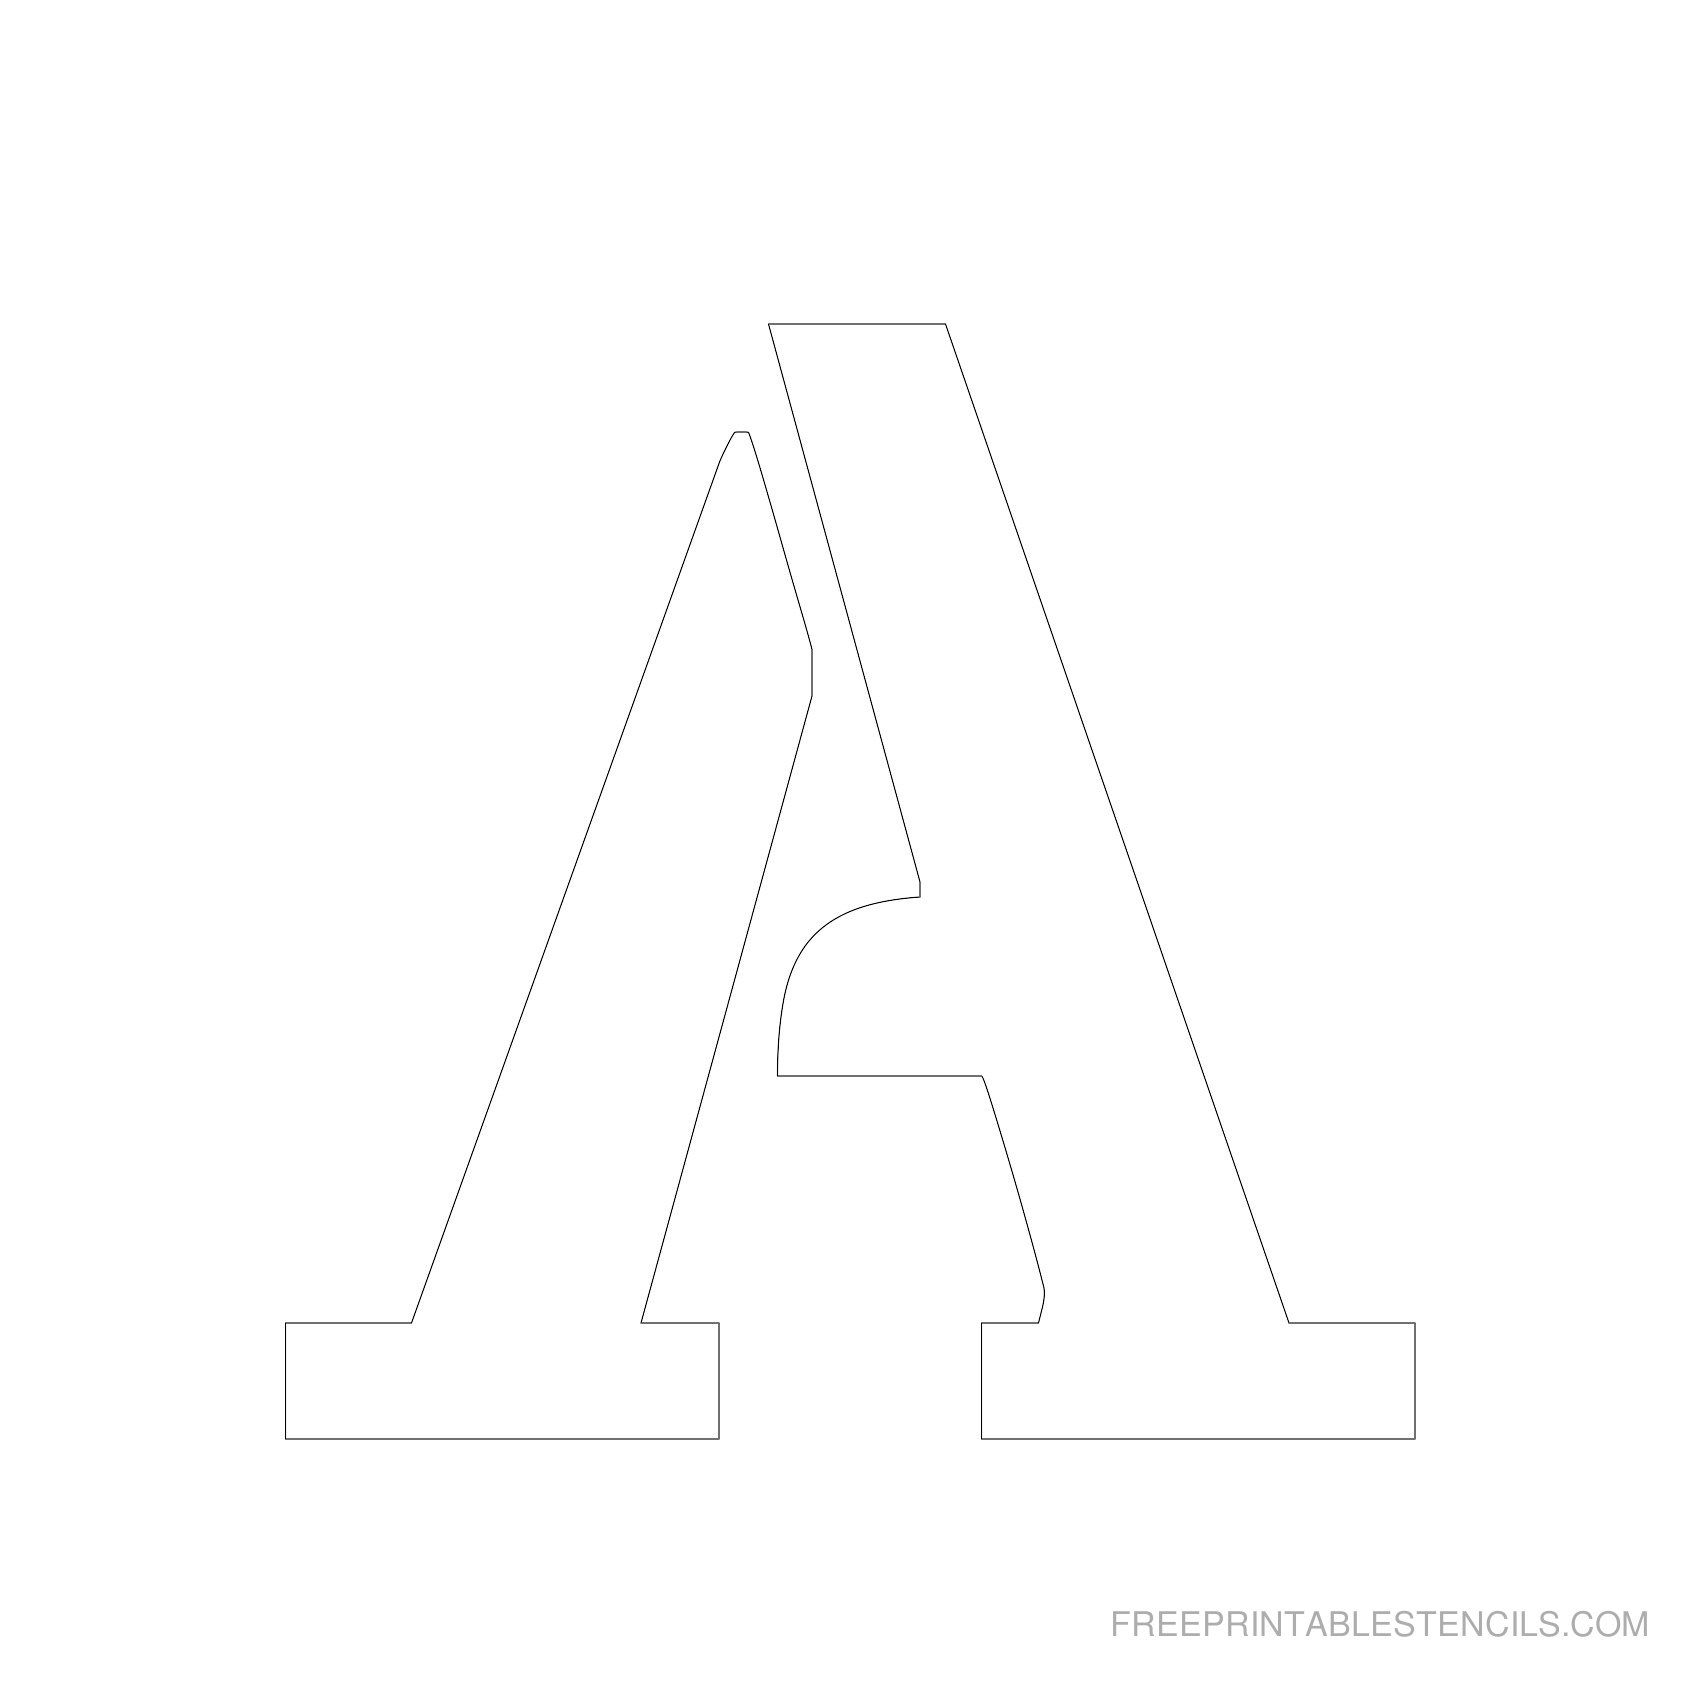 Printable 5 Inch Letter Stencil A Other Stencils As Well | Arts And - Free Printable 12 Inch Letter Stencils